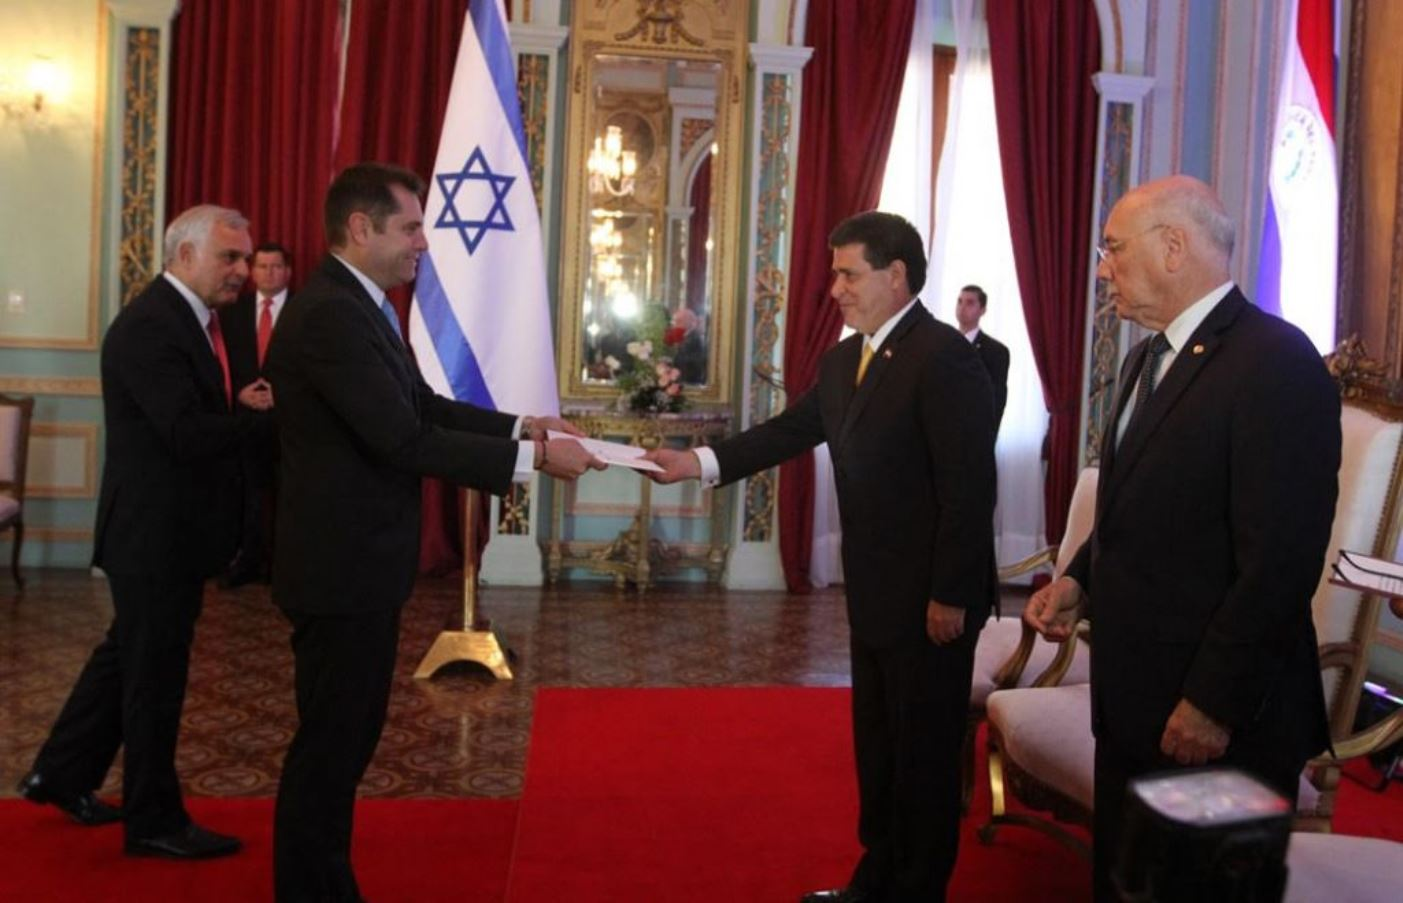 Israeli ambassador to Paraguay Peleg Lewi submitting the charter to reopen the Israeli embassy to President Horacio Cartes on July 27, 2015. Photo courtesy of Dirrección de Informática/SICOM Paraguay